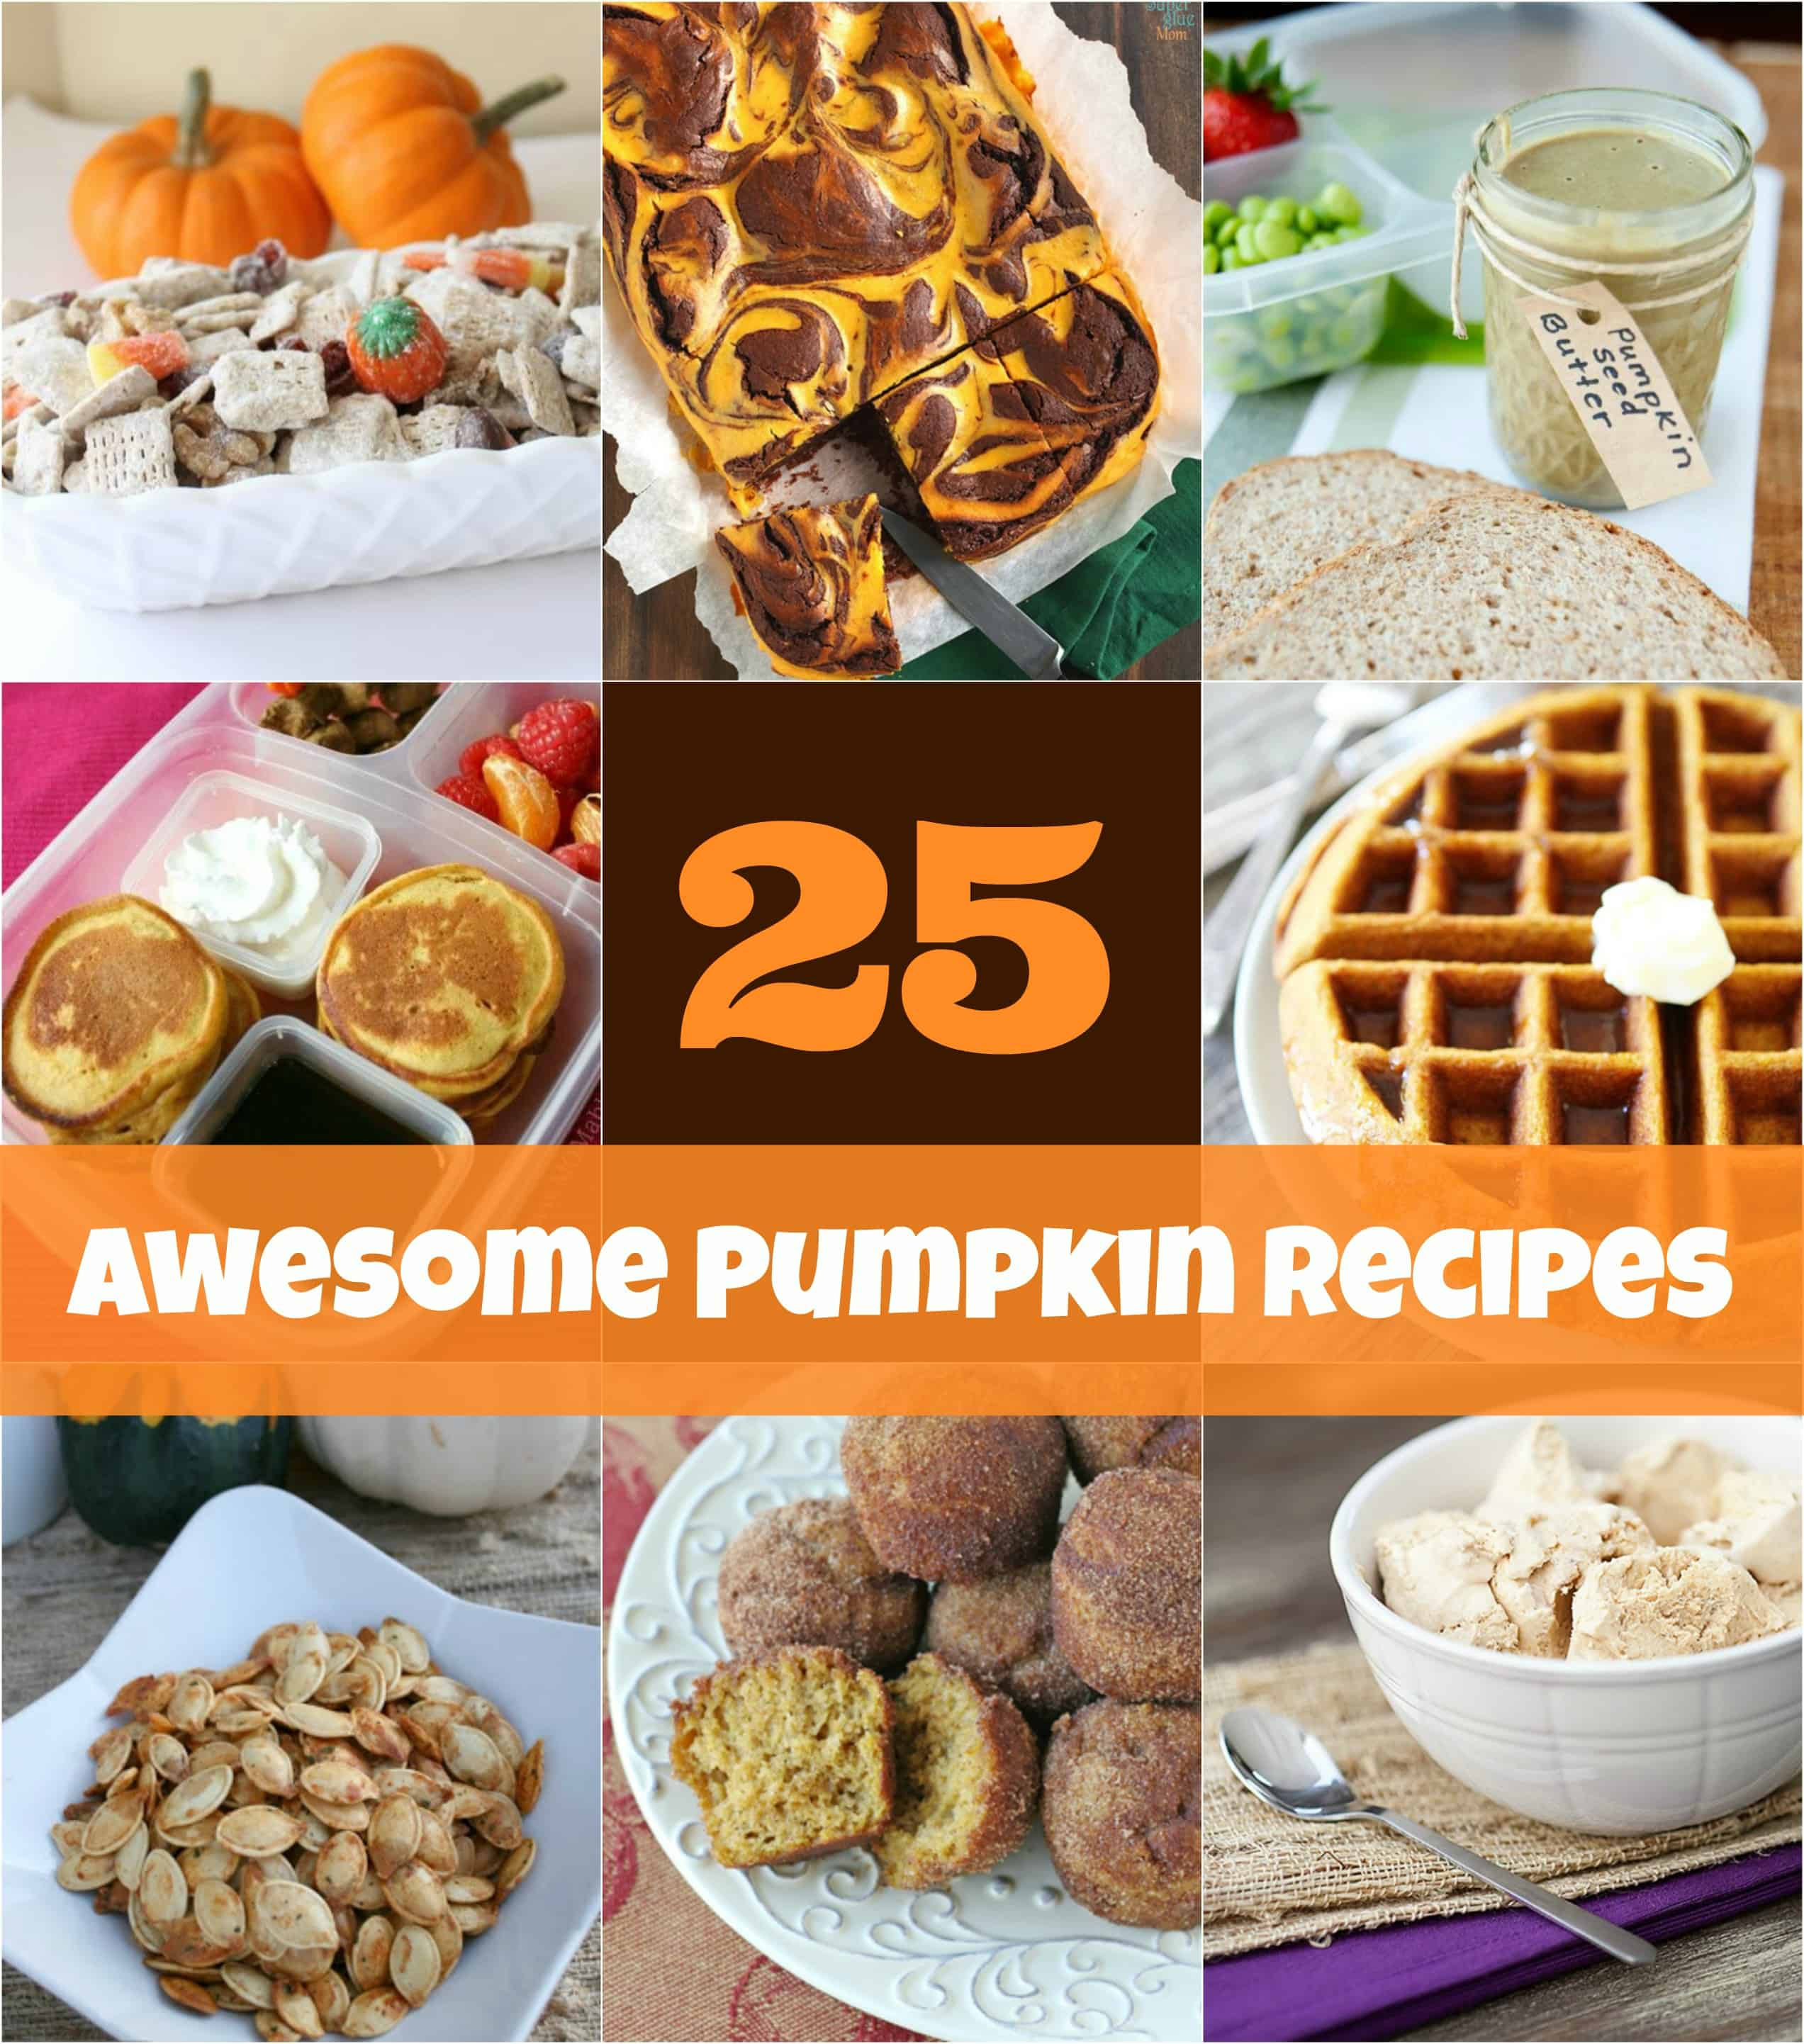 25 pumpkin recipe ideas 25 awesome pumpkin recipe ideas forumfinder Image collections